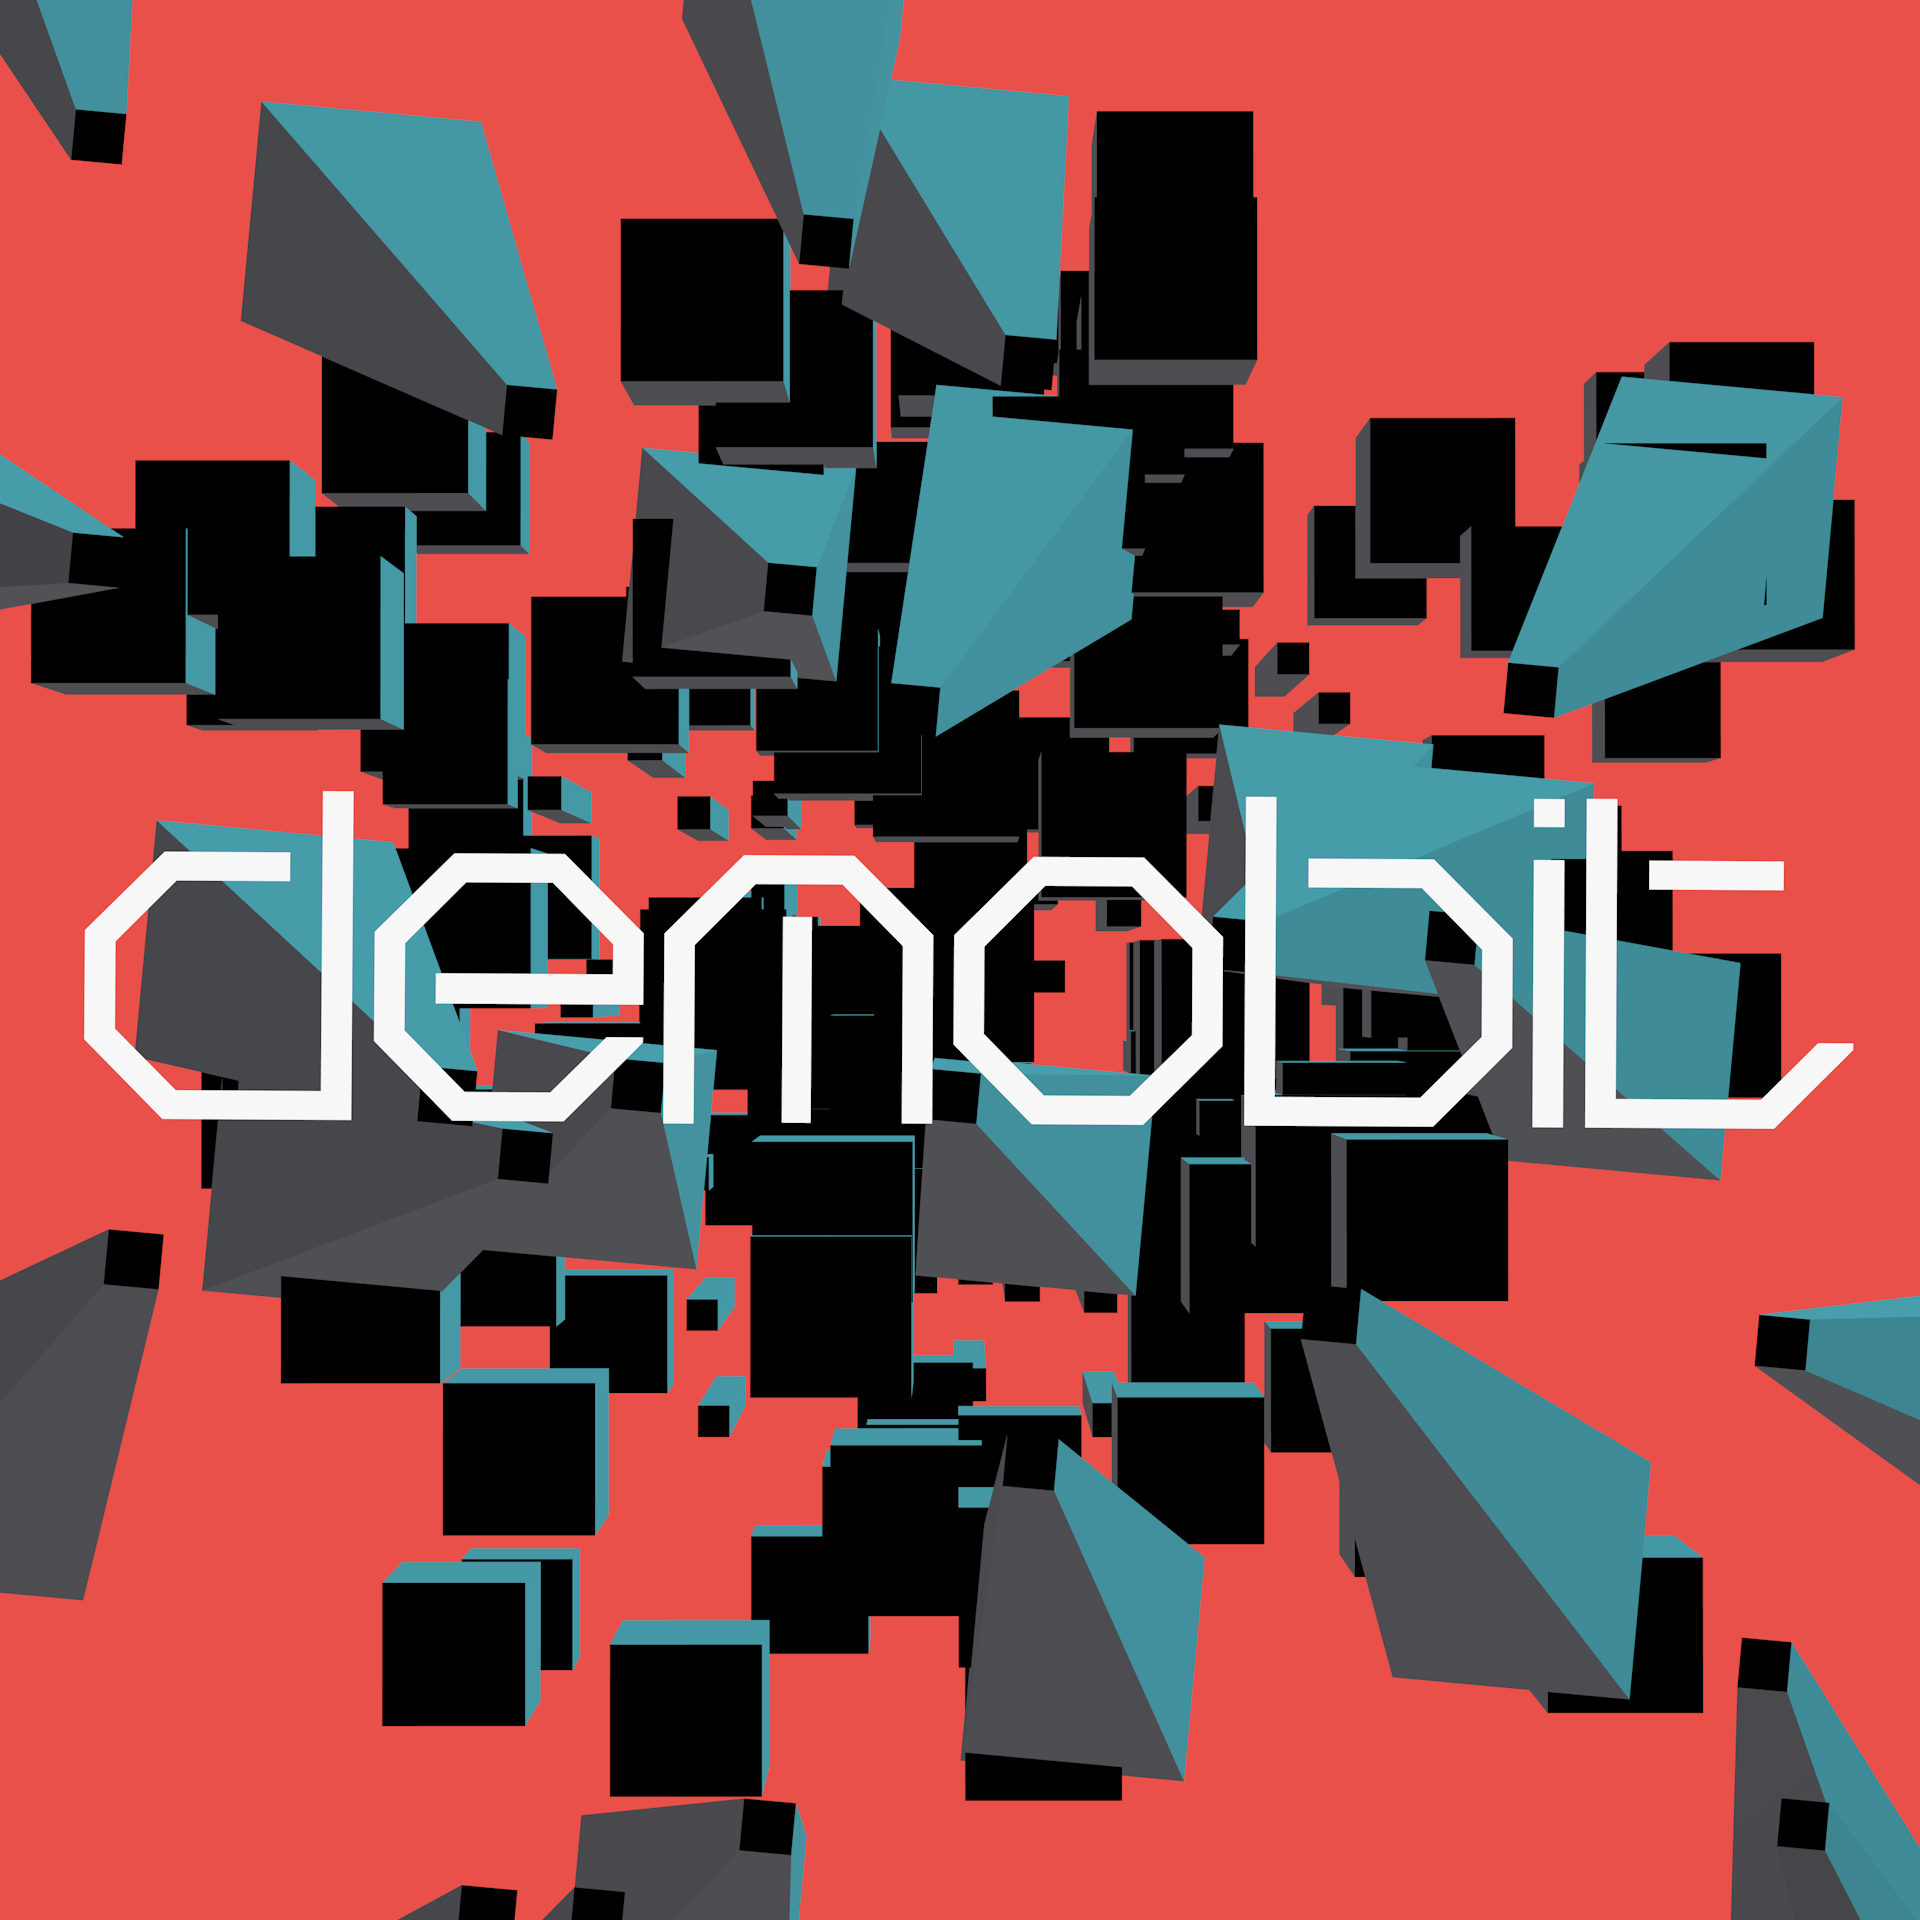 DEMOBIT_fb_icon2_0002png